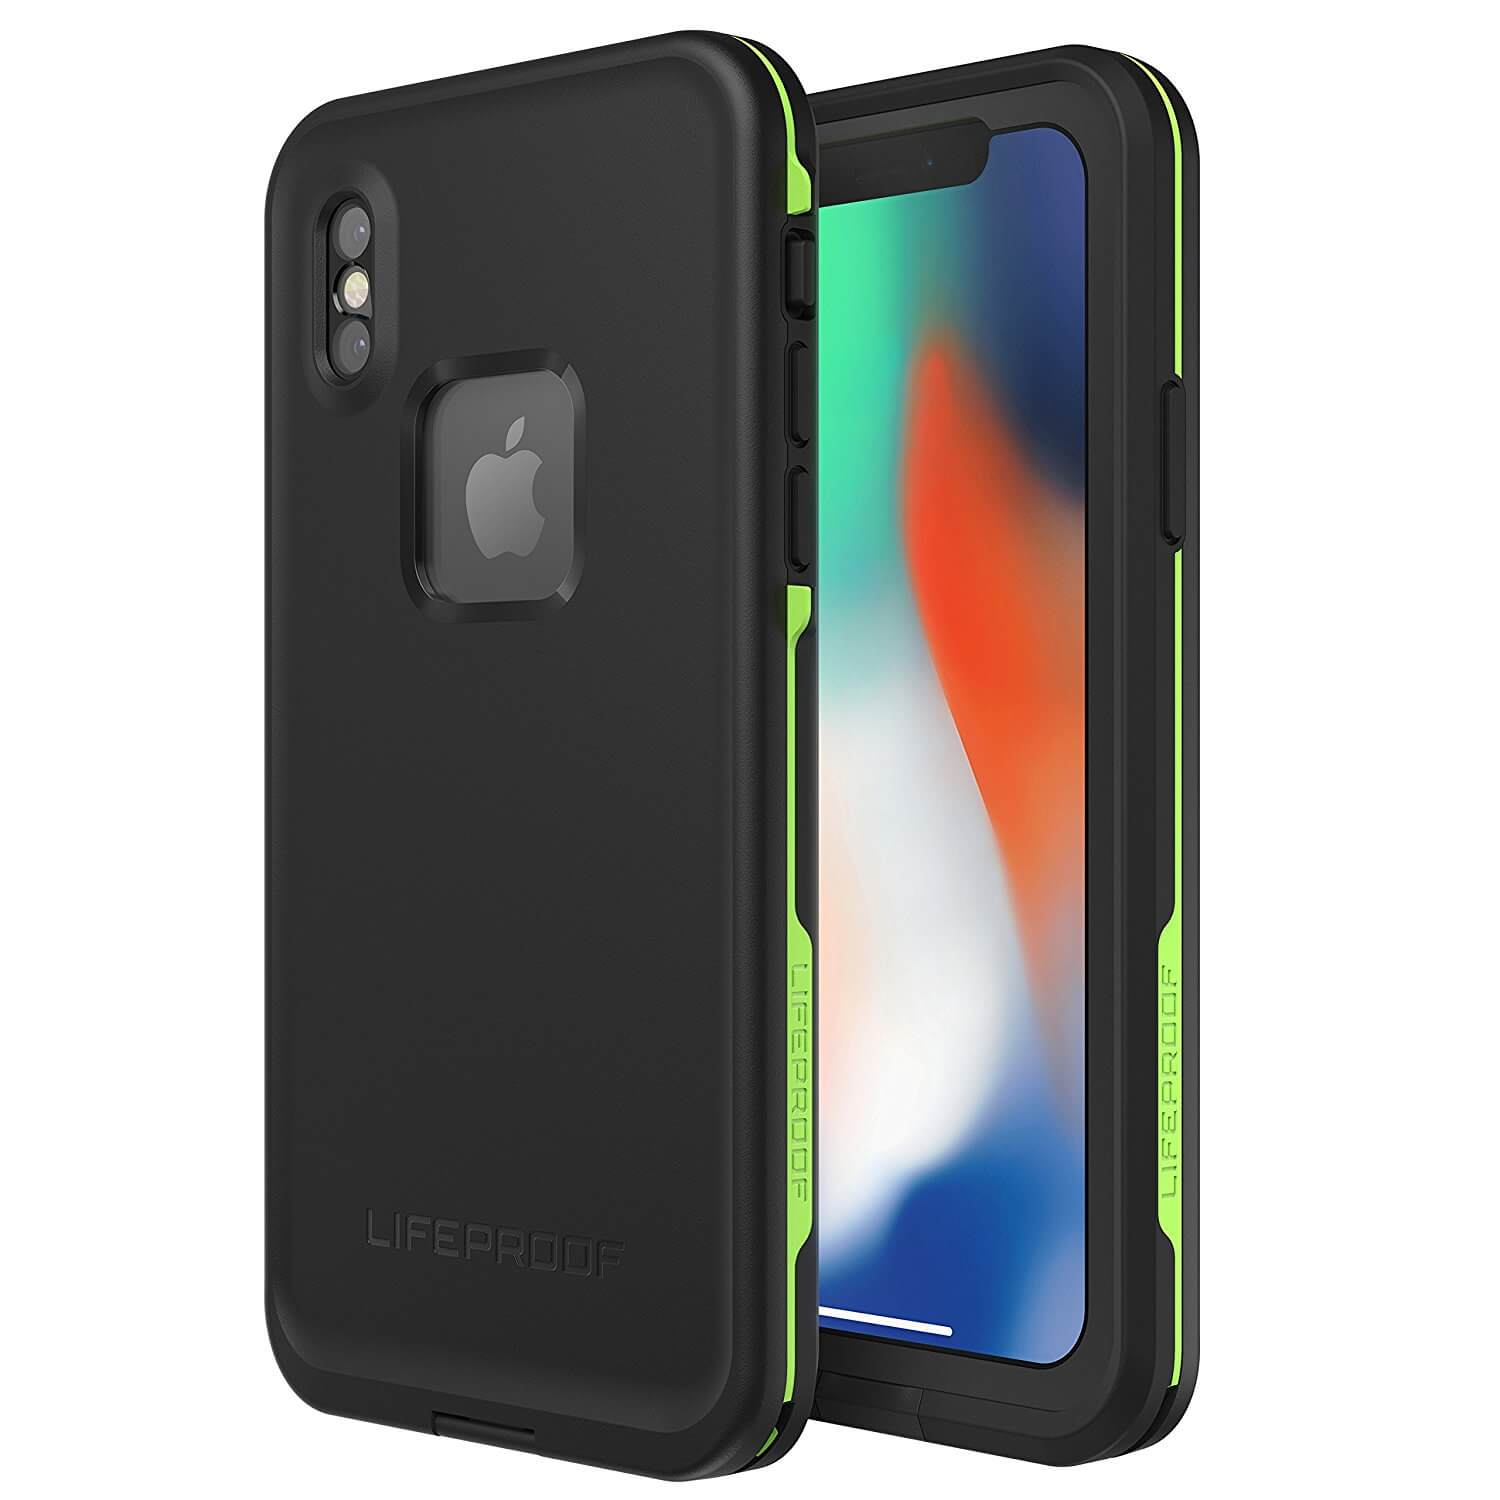 LifeProof Fre case for iPhone XS, iPhone X (black)